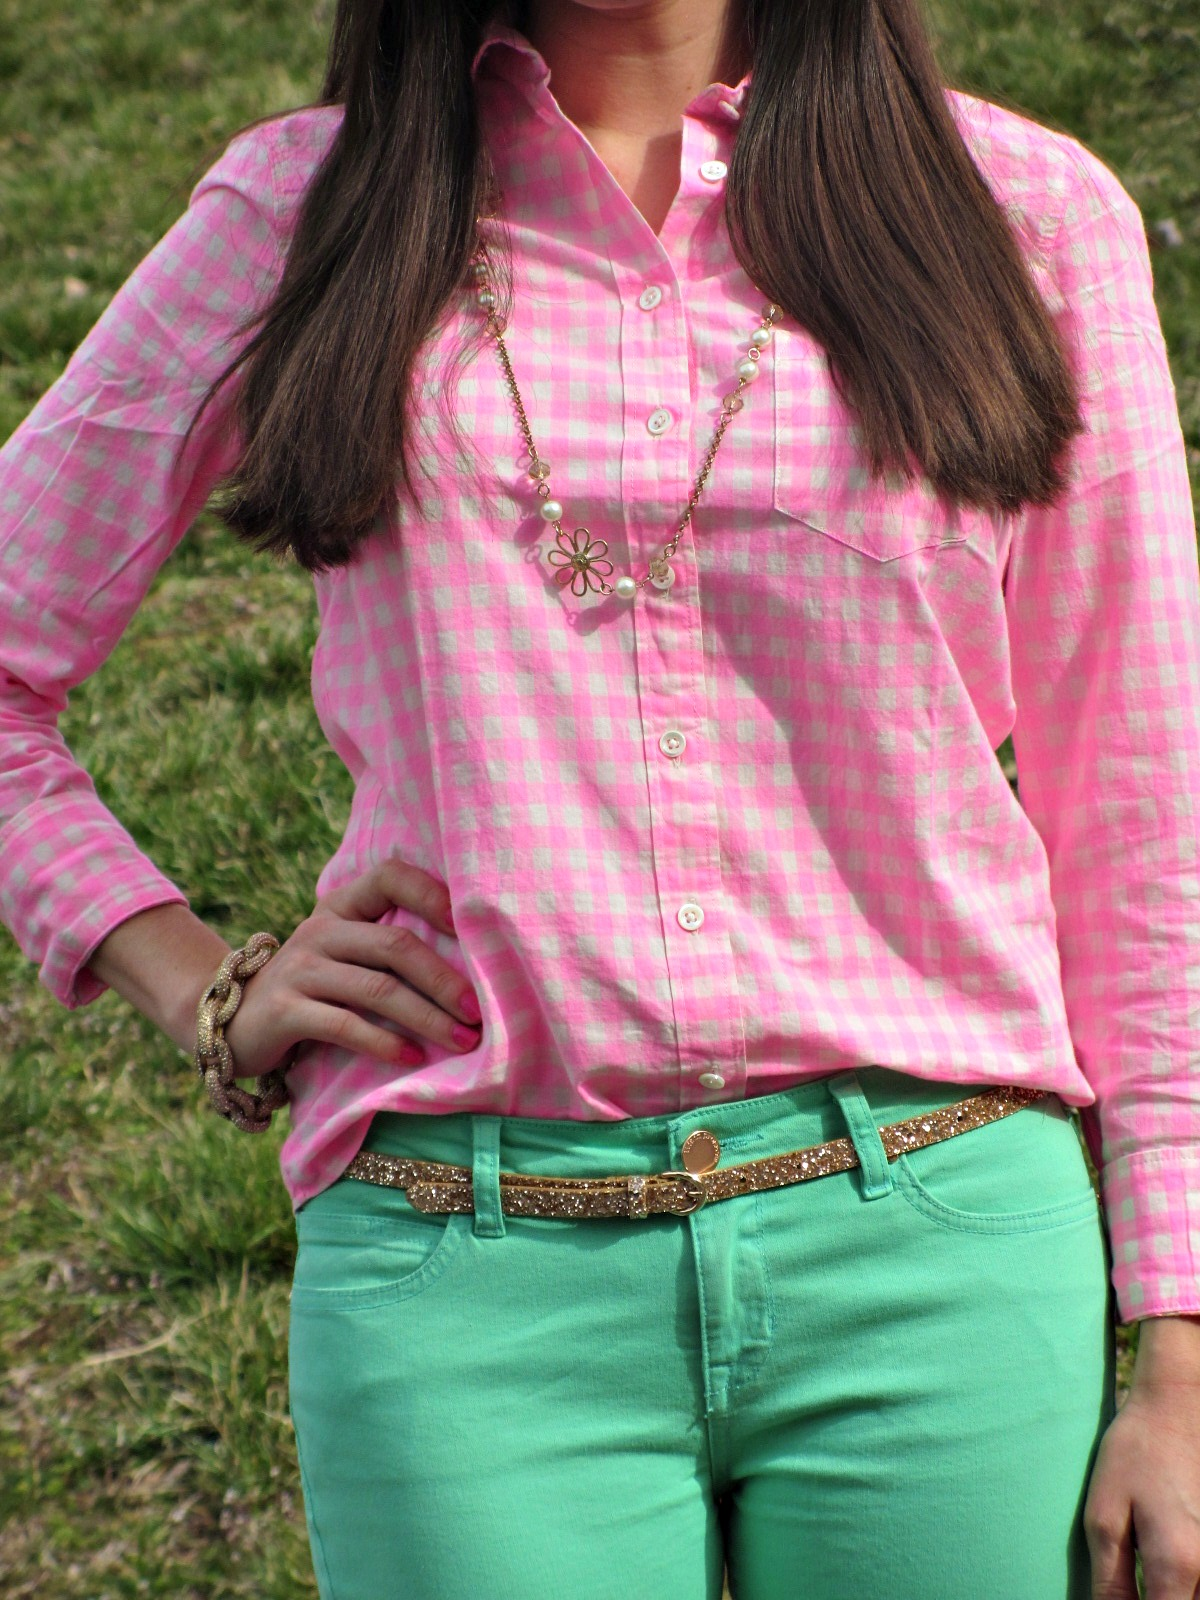 J.Crew Neon Pink Gingham Shirt, Forever 21 Mint Pants, J.Crew Glitter belt, Flower Necklace